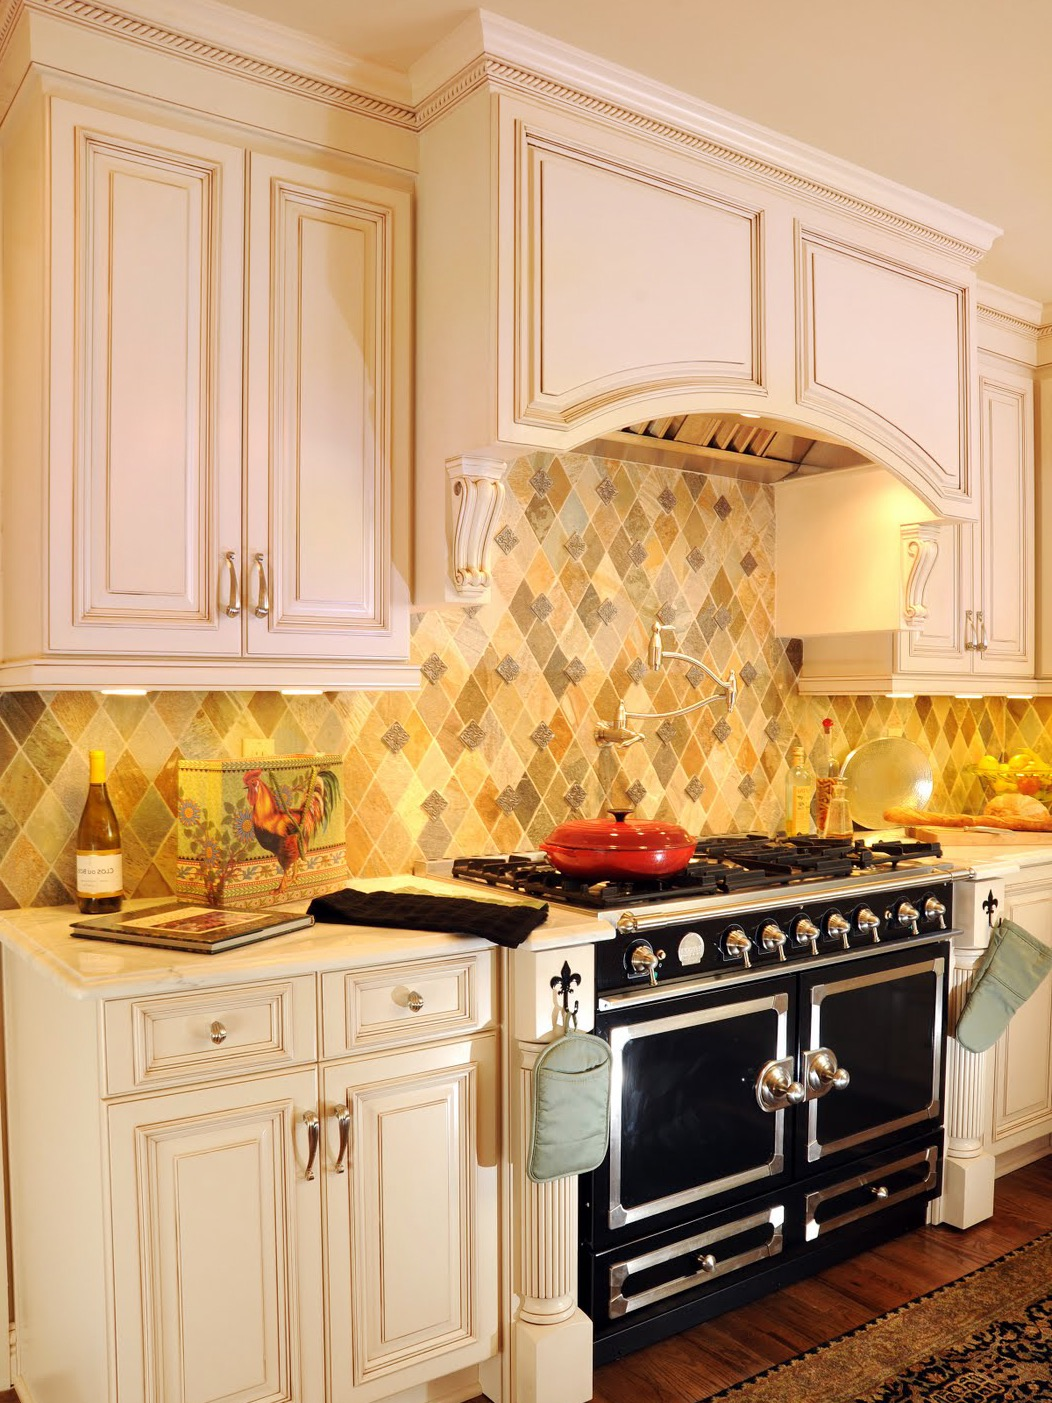 Country Kitchen Backsplash And Arched Hood (Image 5 of 32)